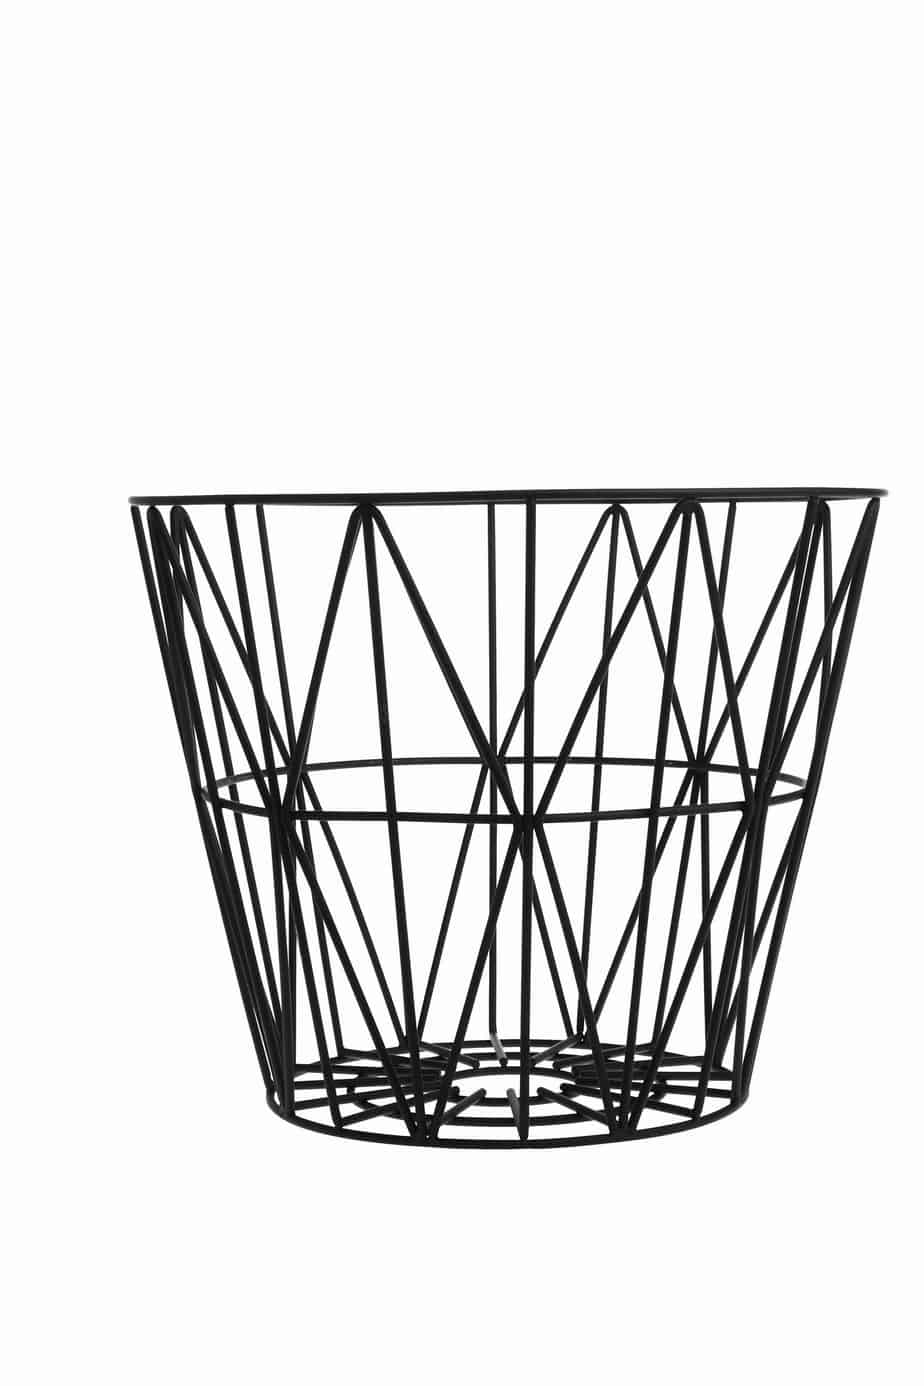 Decorative Laundry Baskets Decorative Wire Baskets Storage Baskets Laundry Shoppe